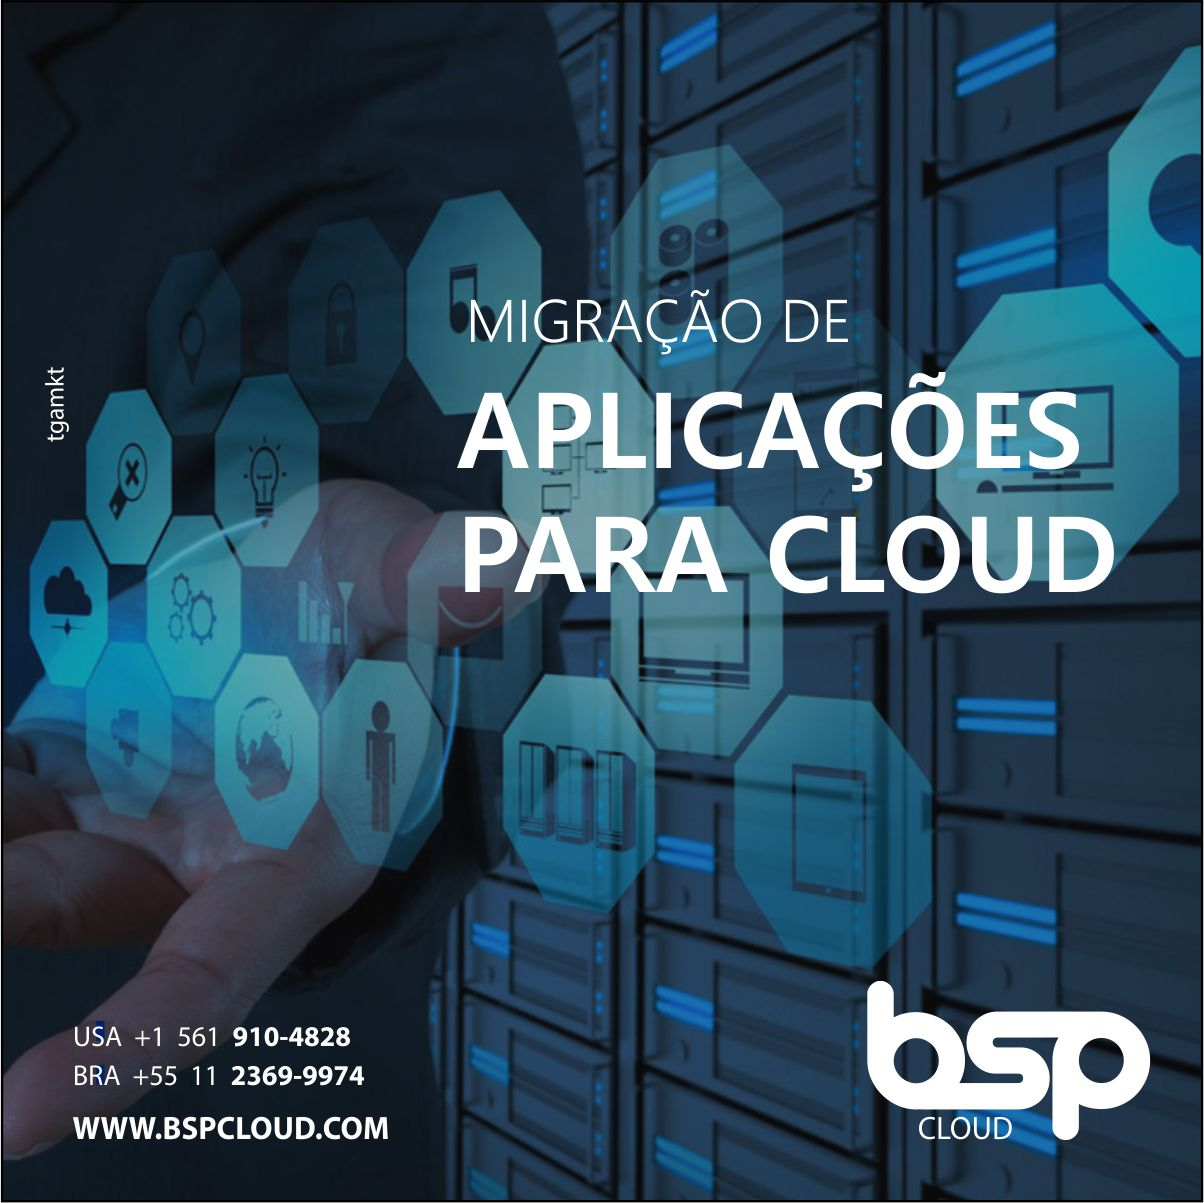 Migracao De Aplicacoes Para Cloud Bsp Cloud